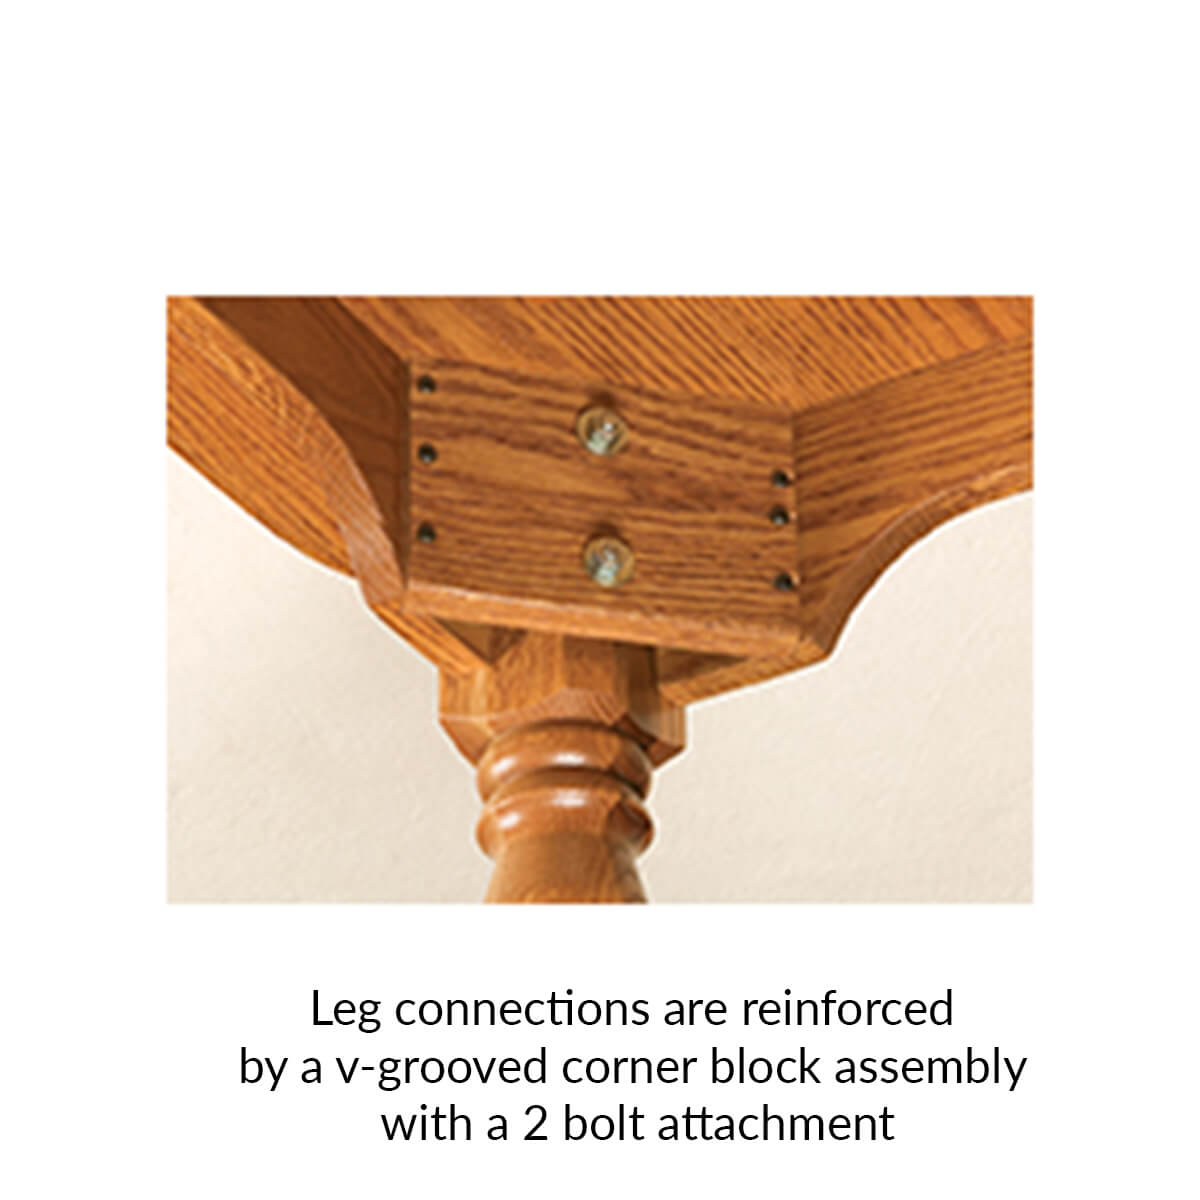 0.1-leg-connections-are-reinforced-by-a-v-grooved-corner-block-assembly-with-a-2-bolt-attachment.jpg